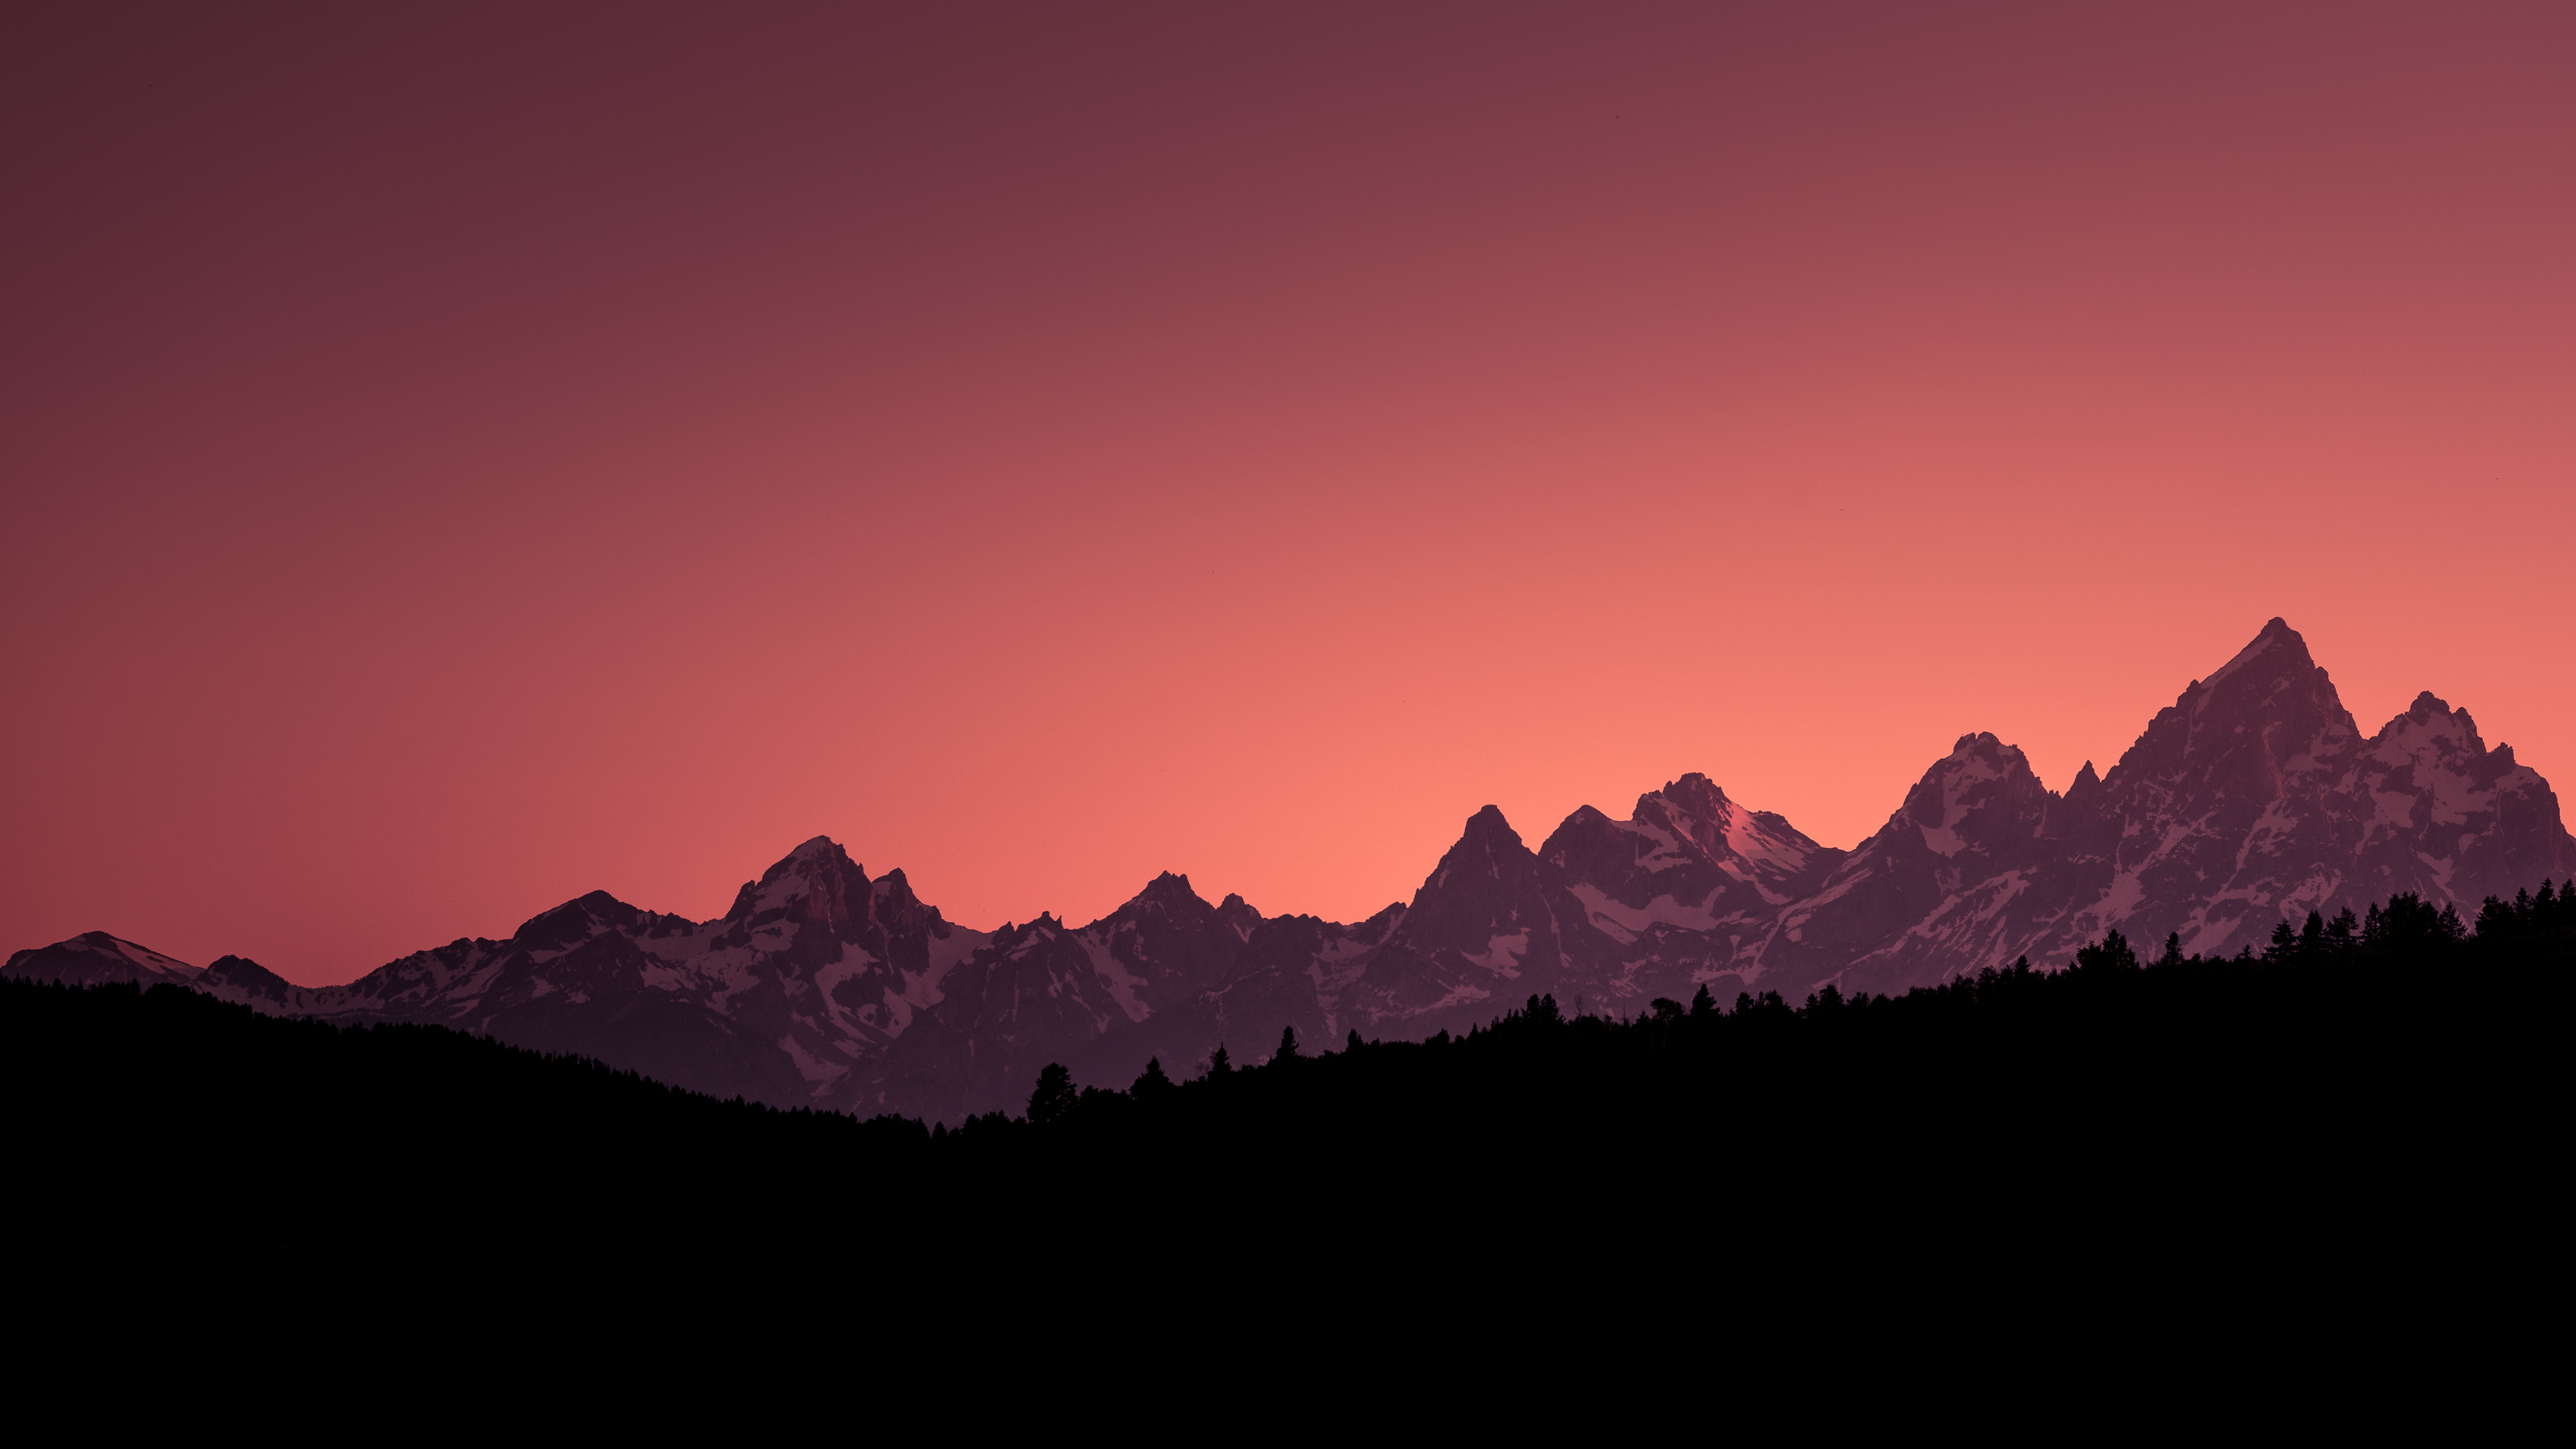 grand teton sunset 1540143646 - Grand Teton Sunset - sunset wallpapers, nature wallpapers, mountains wallpapers, hd-wallpapers, 4k-wallpapers